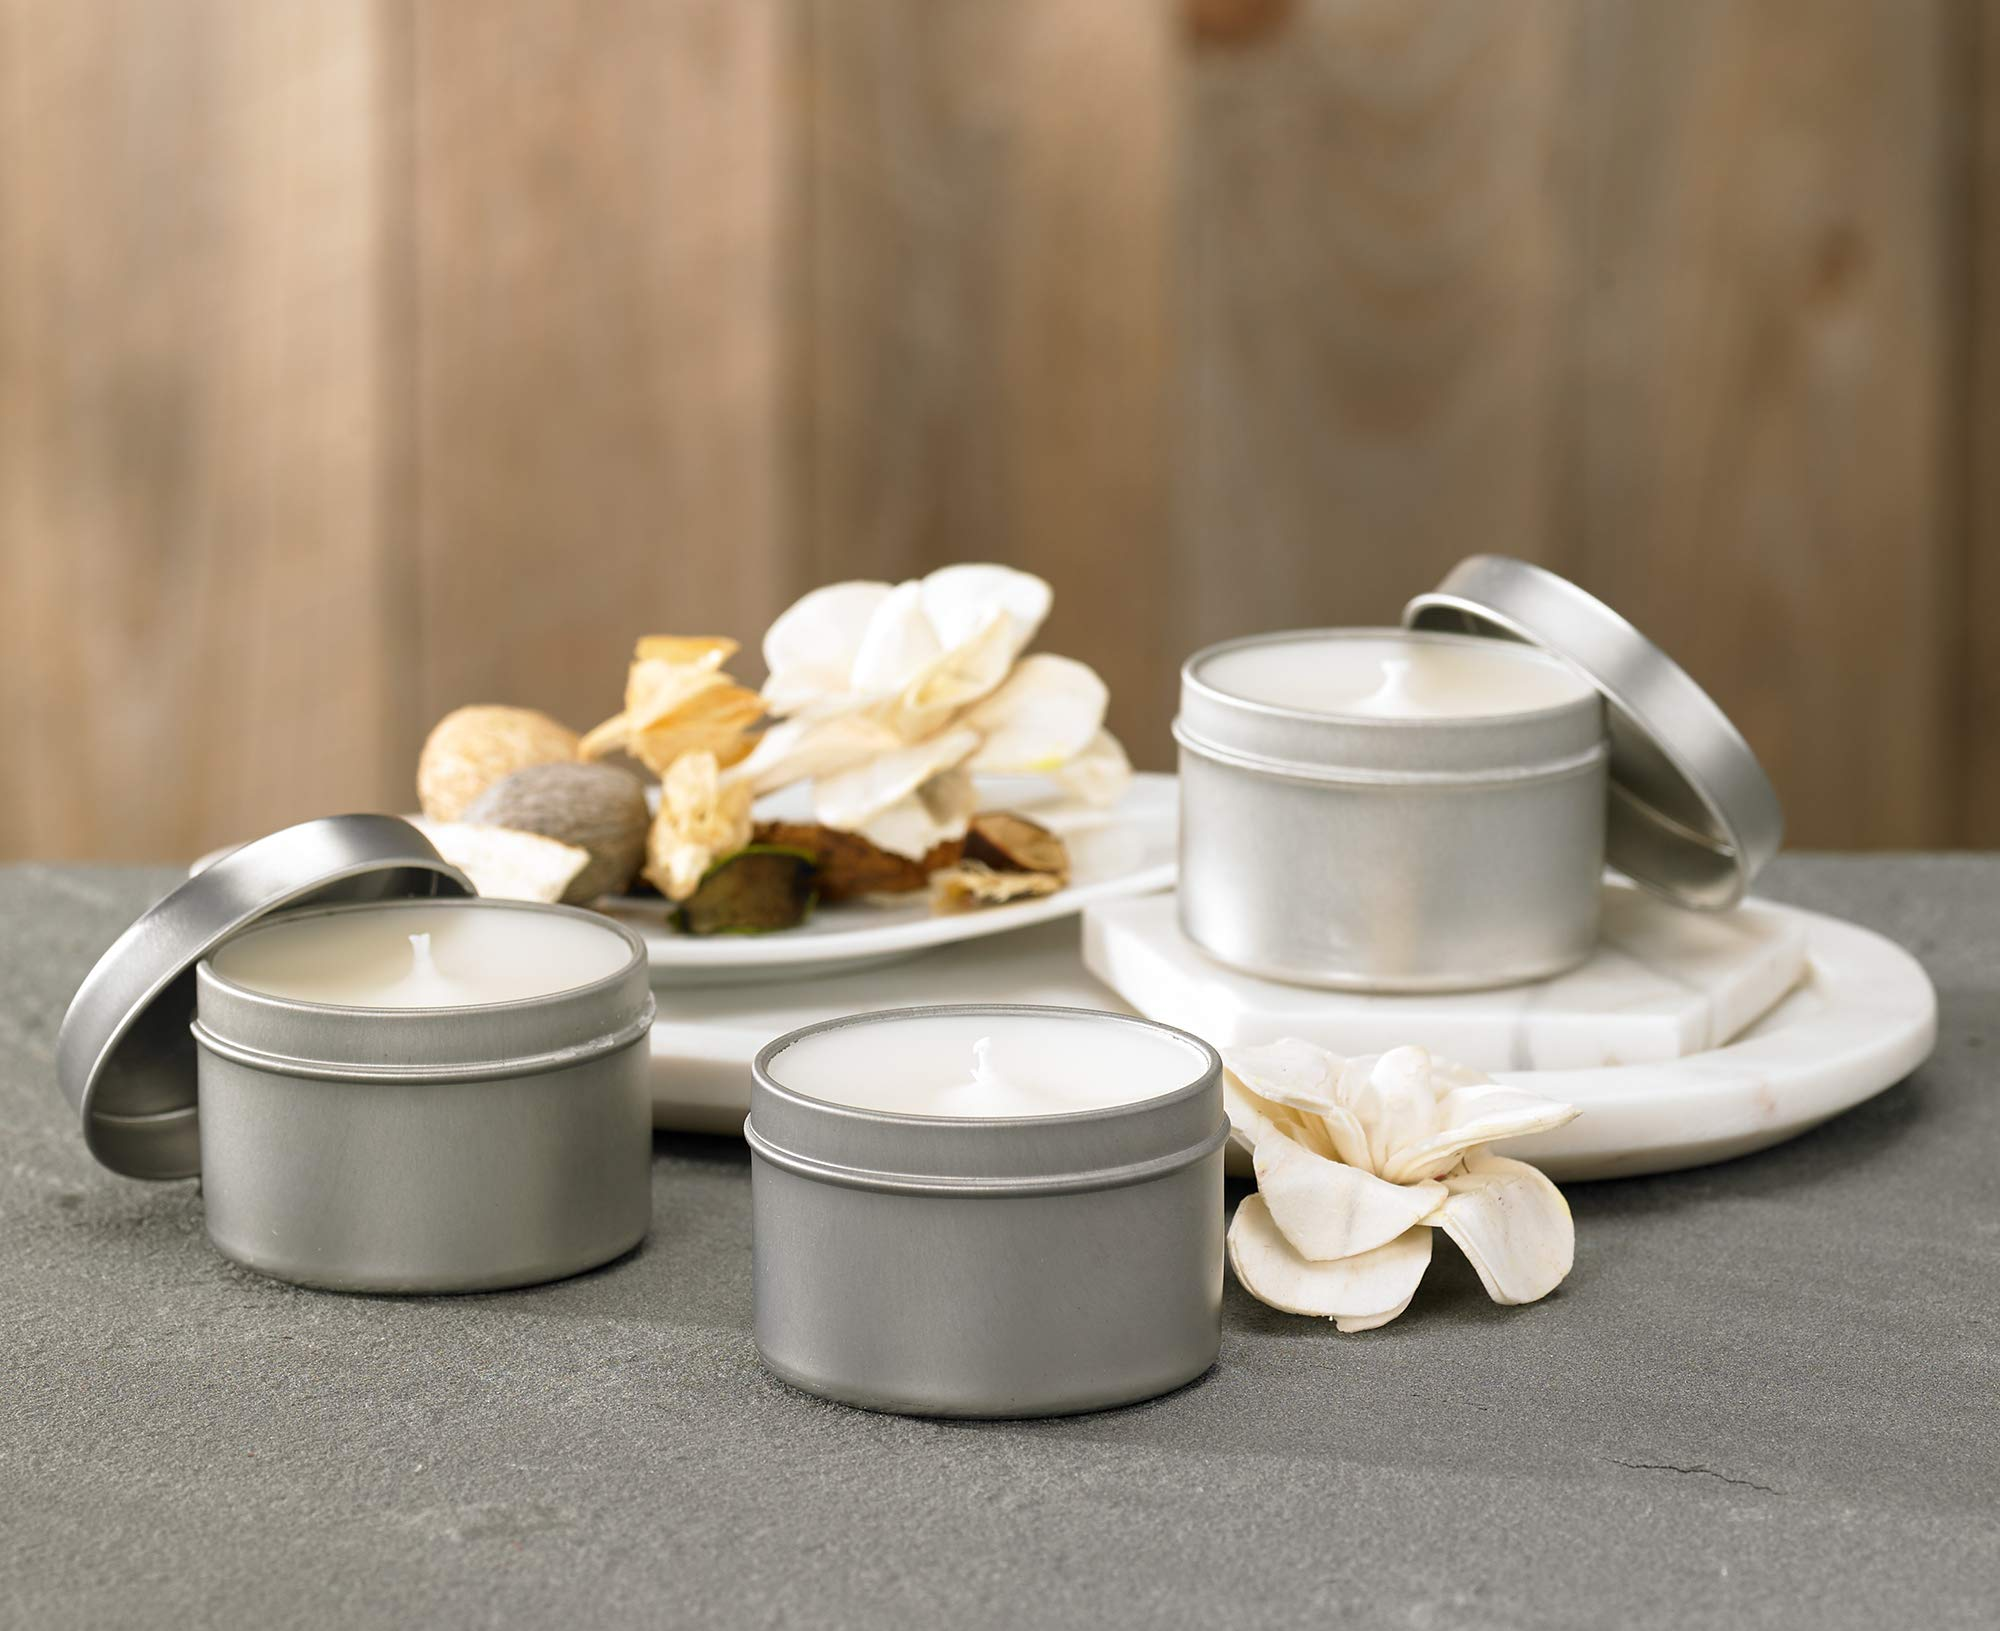 Westin White Tea Candle in a Tin - Hand-Poured, Soy Candle in Tin - Signature White Tea Scent - 4 oz. - Set of 3 by Westin